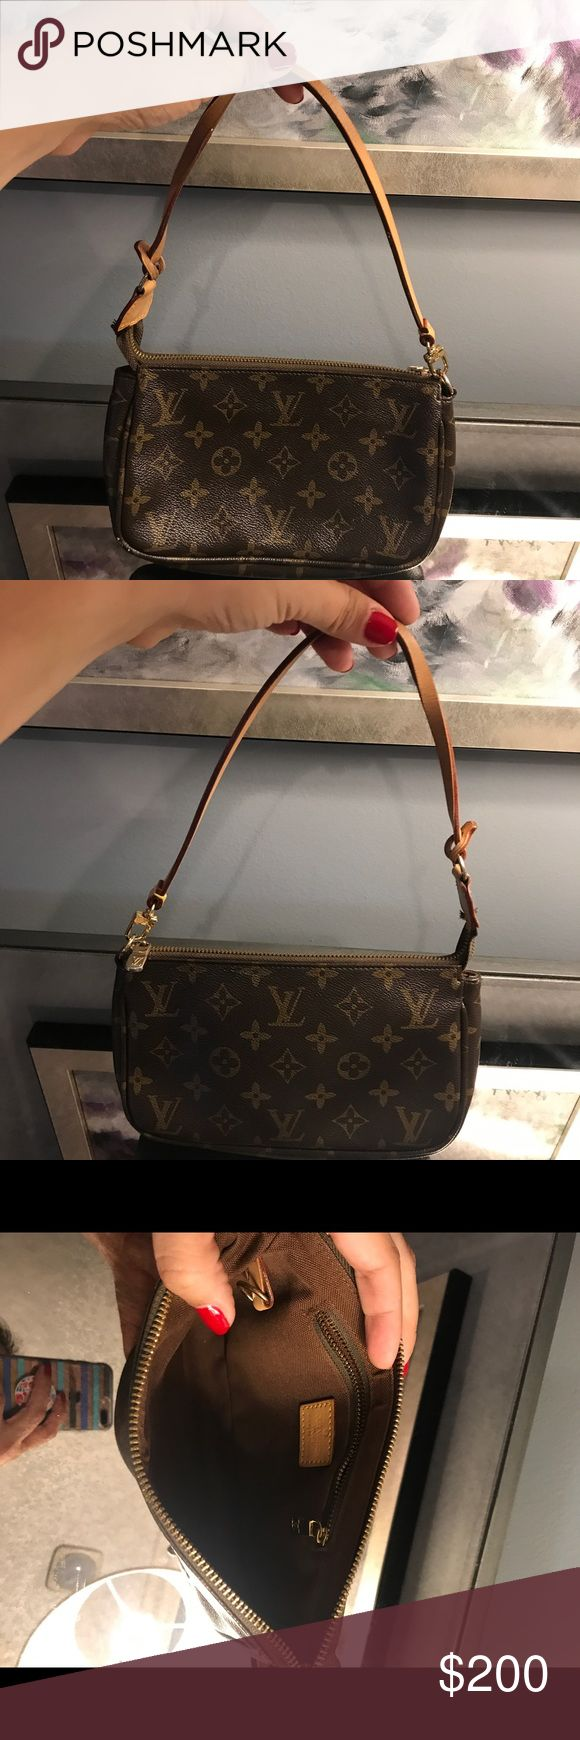 Authentic small Louis Vuitton purse Small Louis Vuitton purse in very good condition Louis Vuitton Bags Shoulder Bags